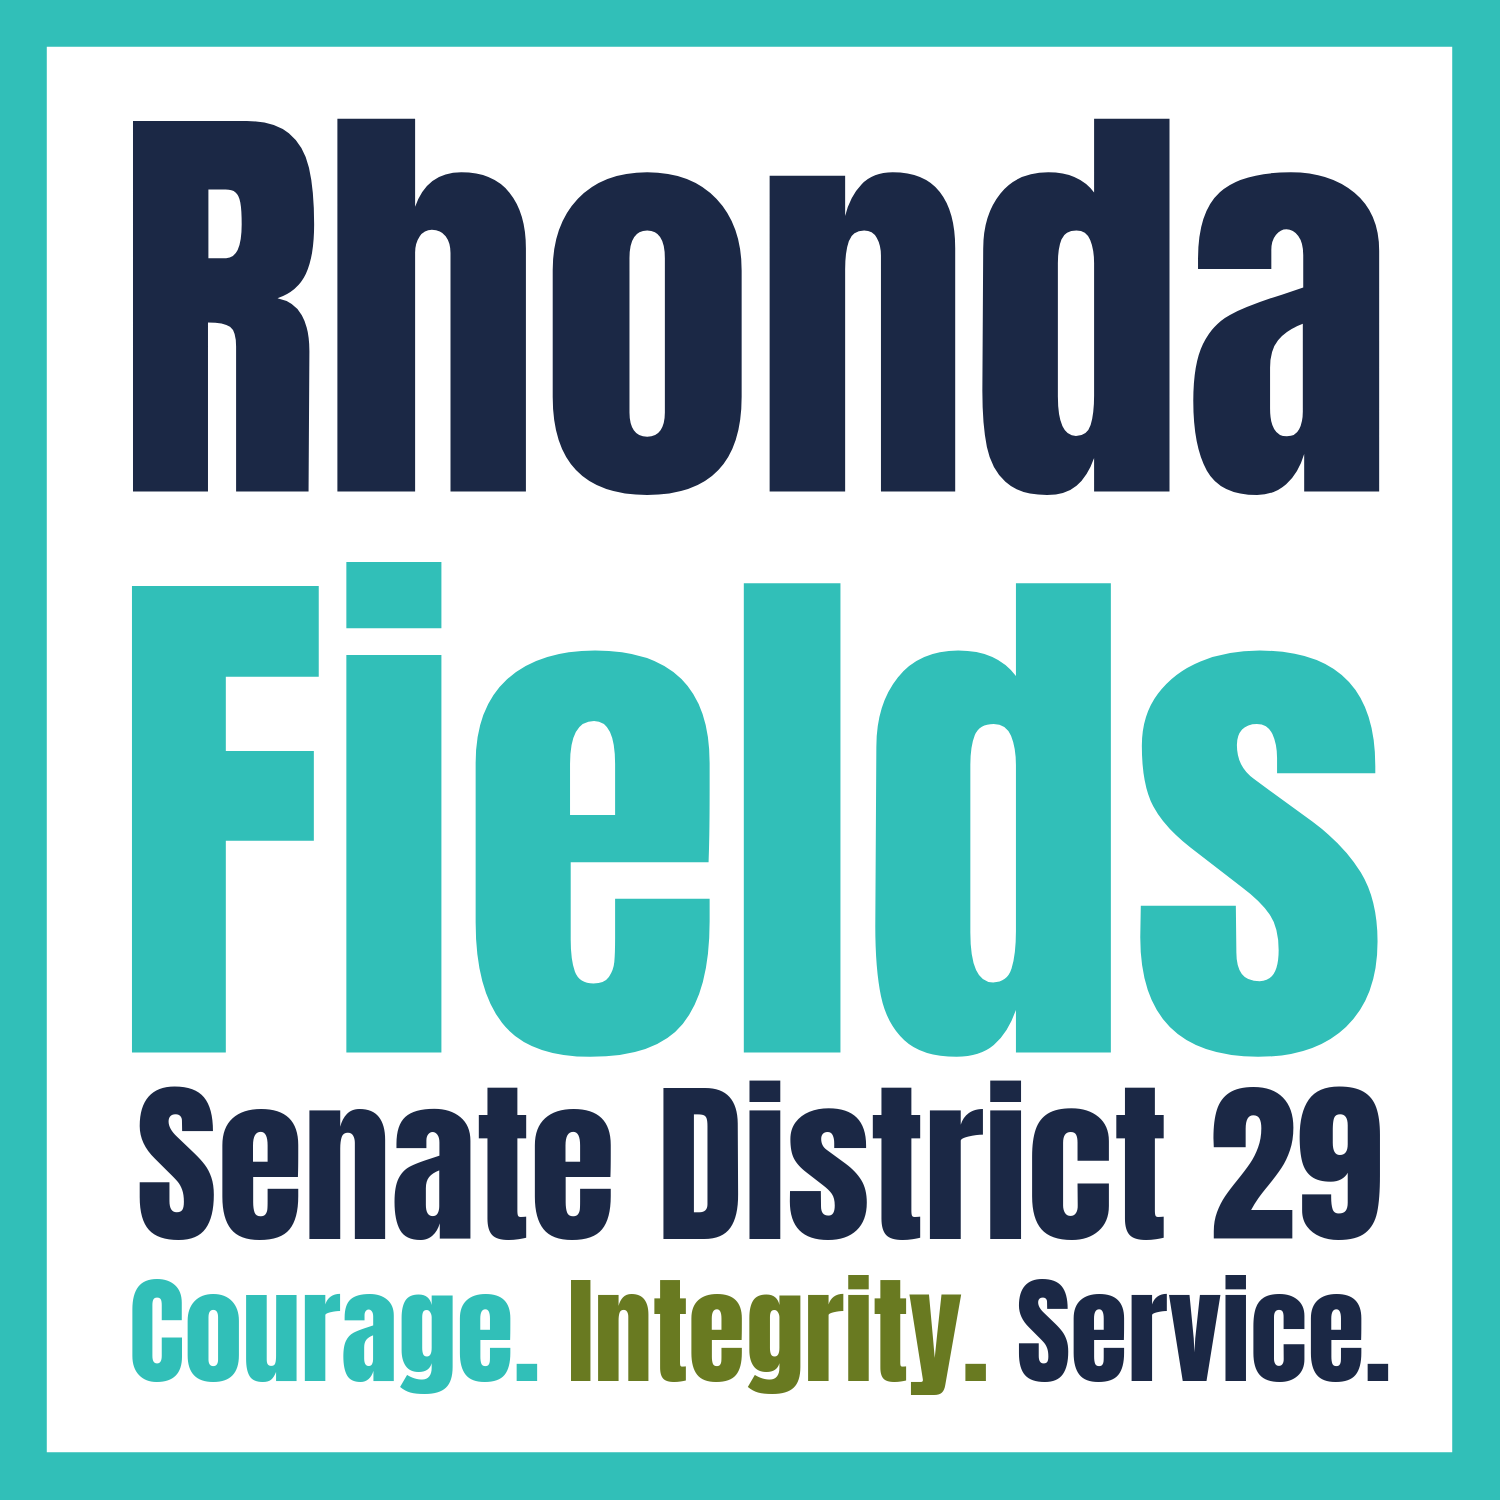 Senator Rhonda Fields